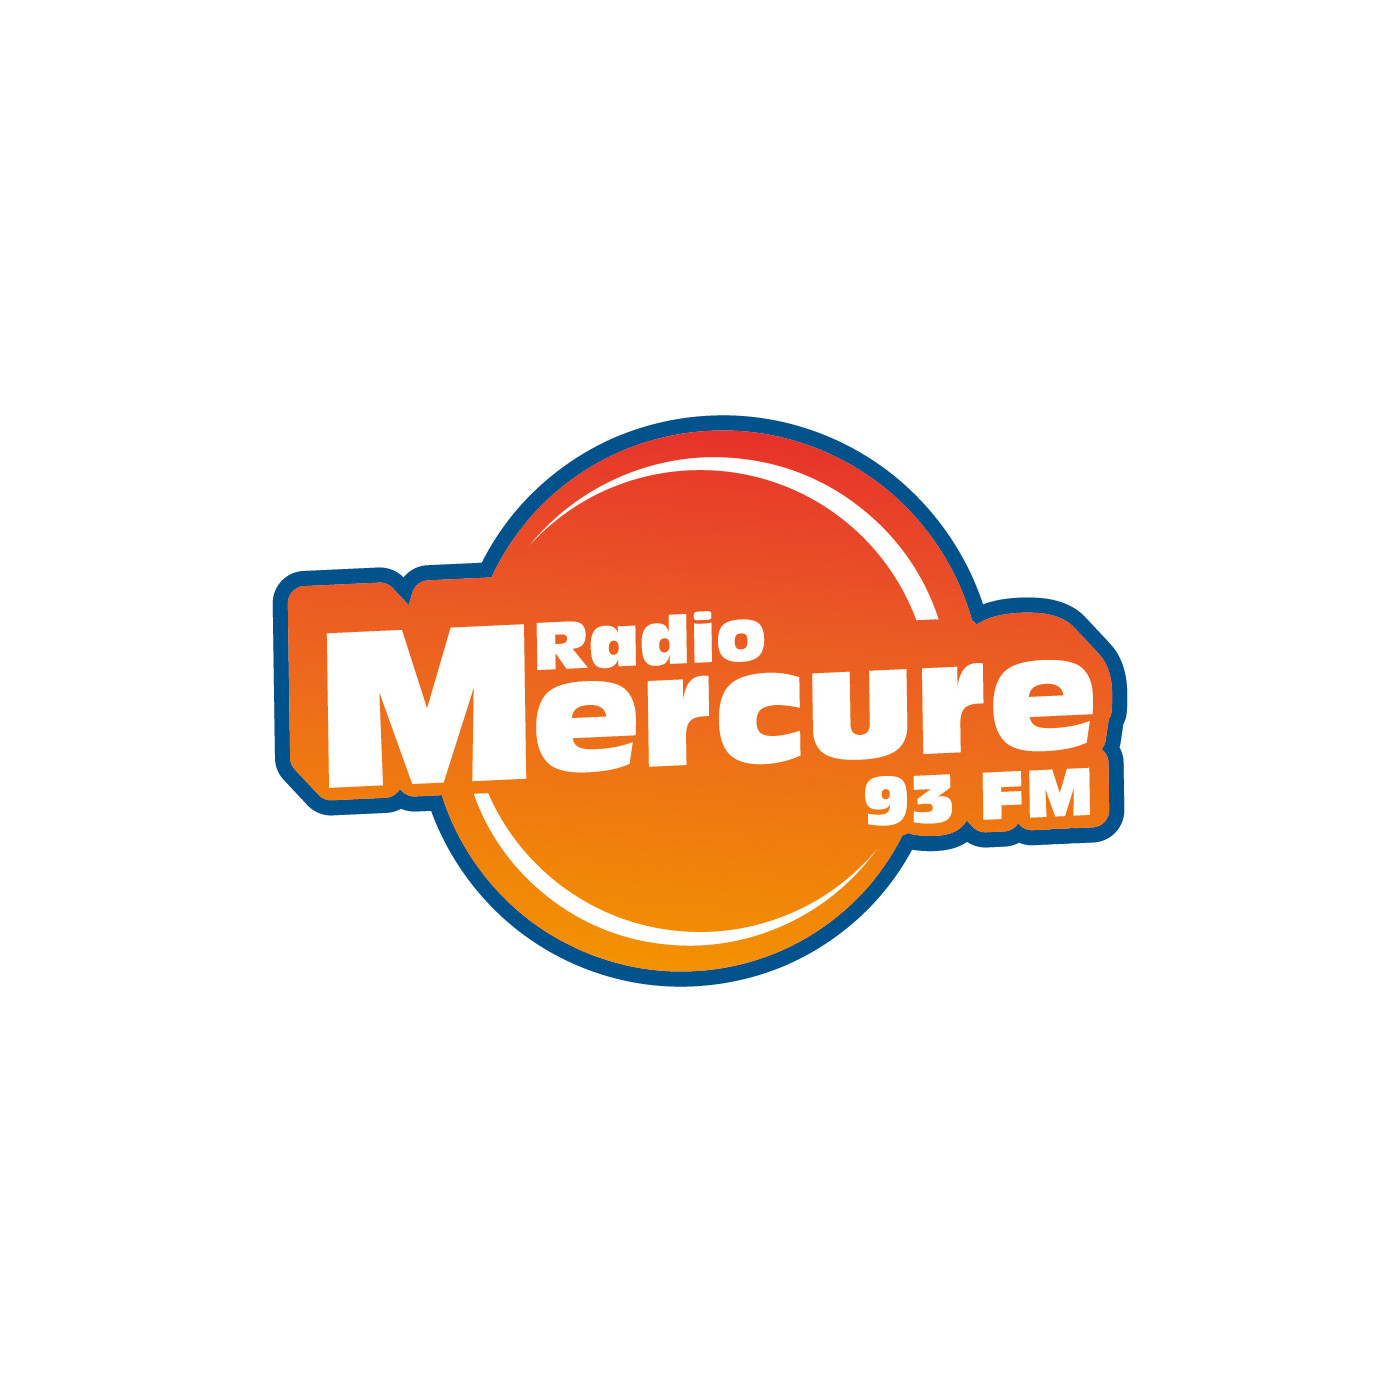 RADIO MERCURE - ACCORDEZ-DONC-VOS-ACCORDEONS